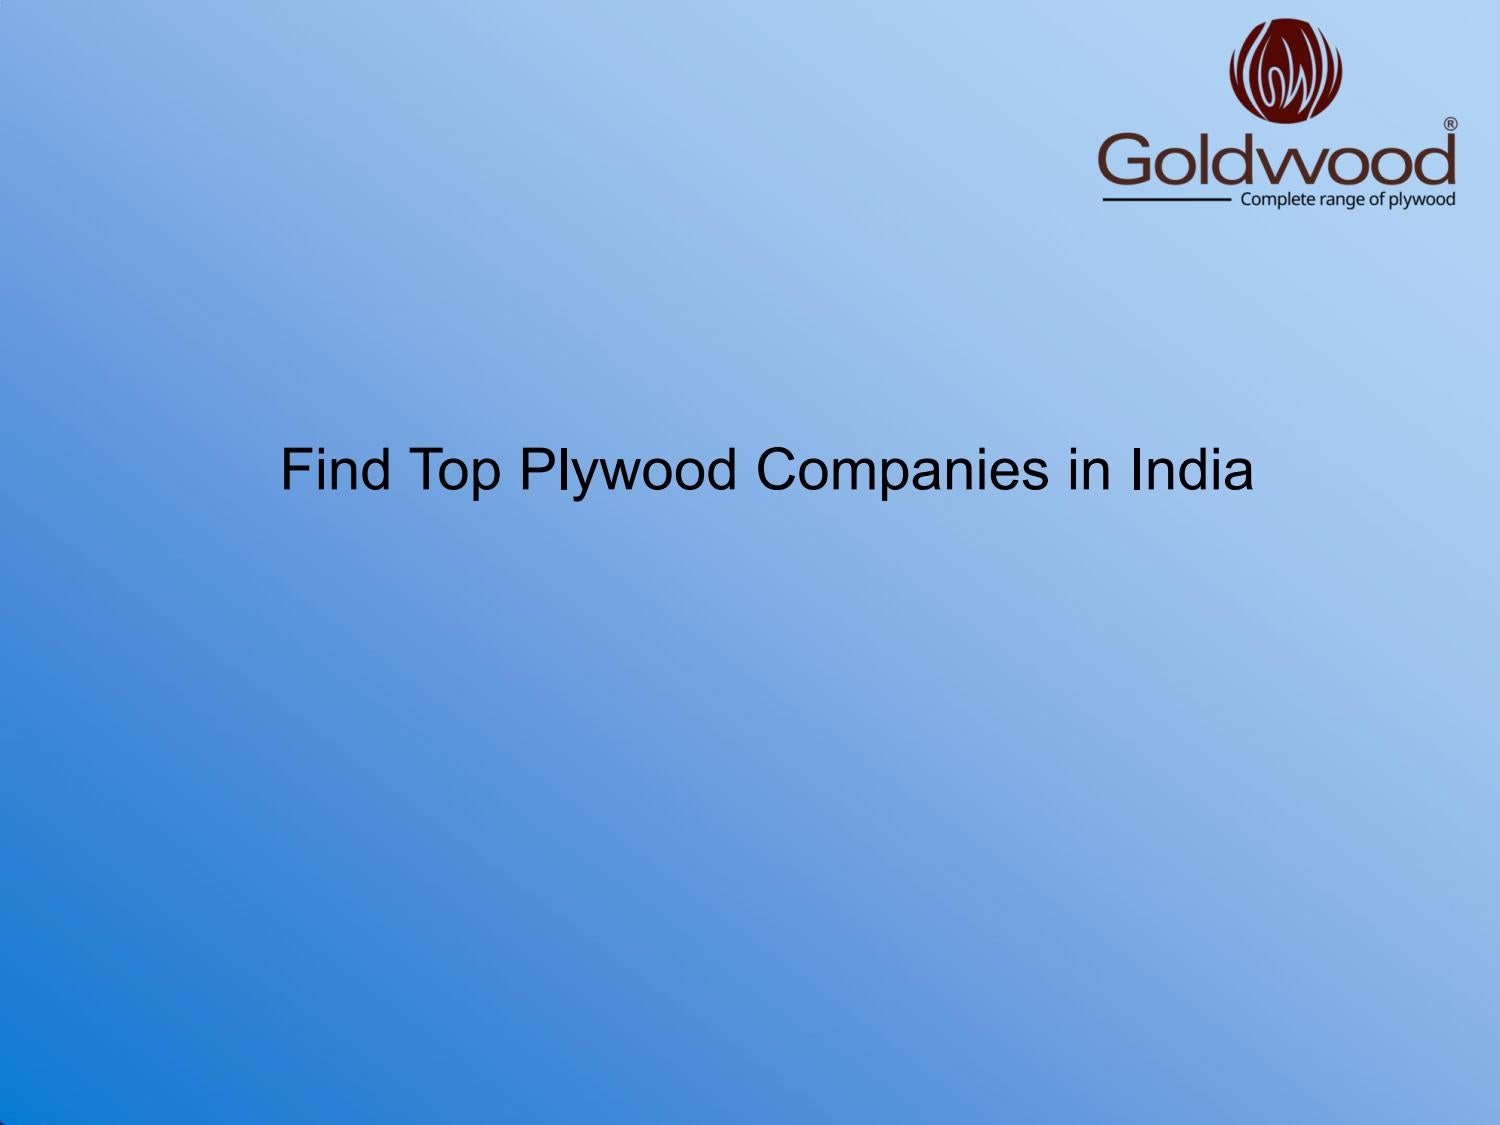 Find Top Plywood Companies in India